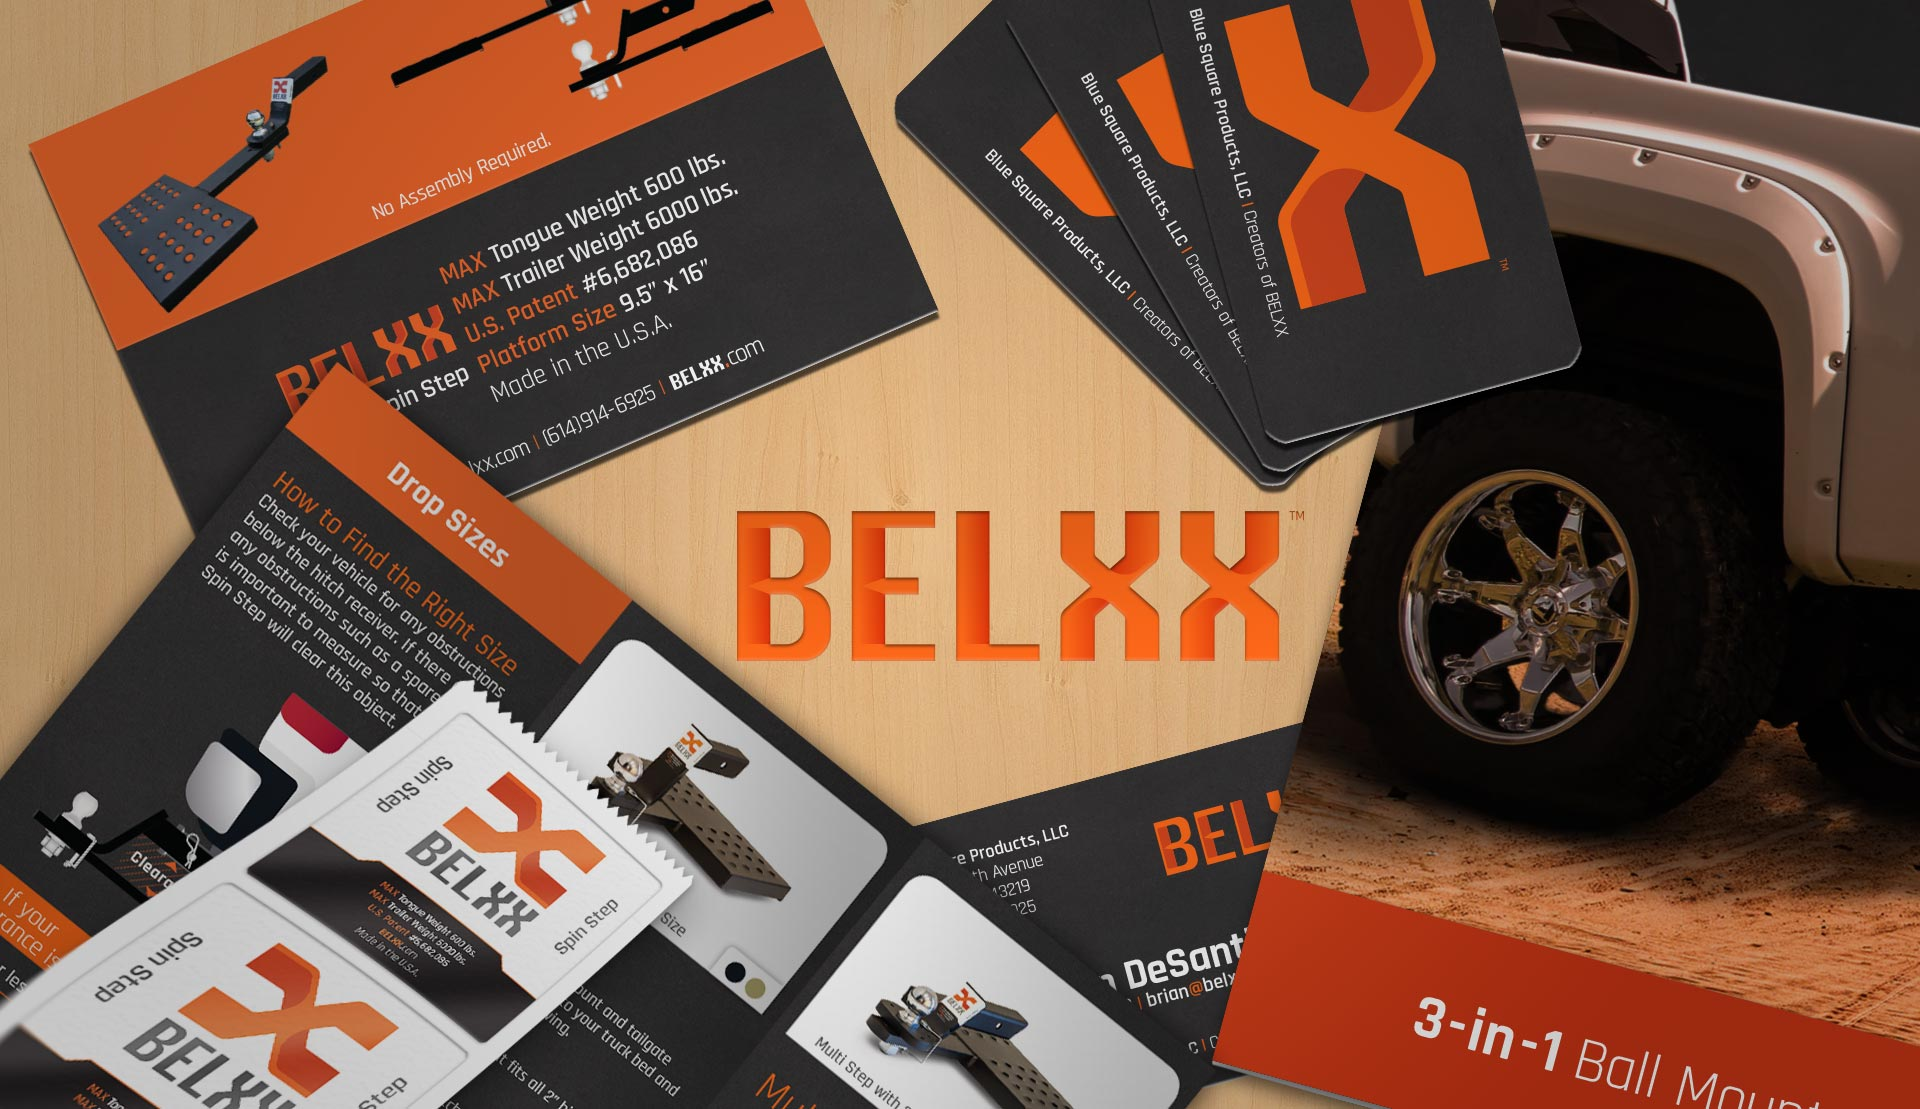 Belxx branding graphic composed of multiple marketing pieces.